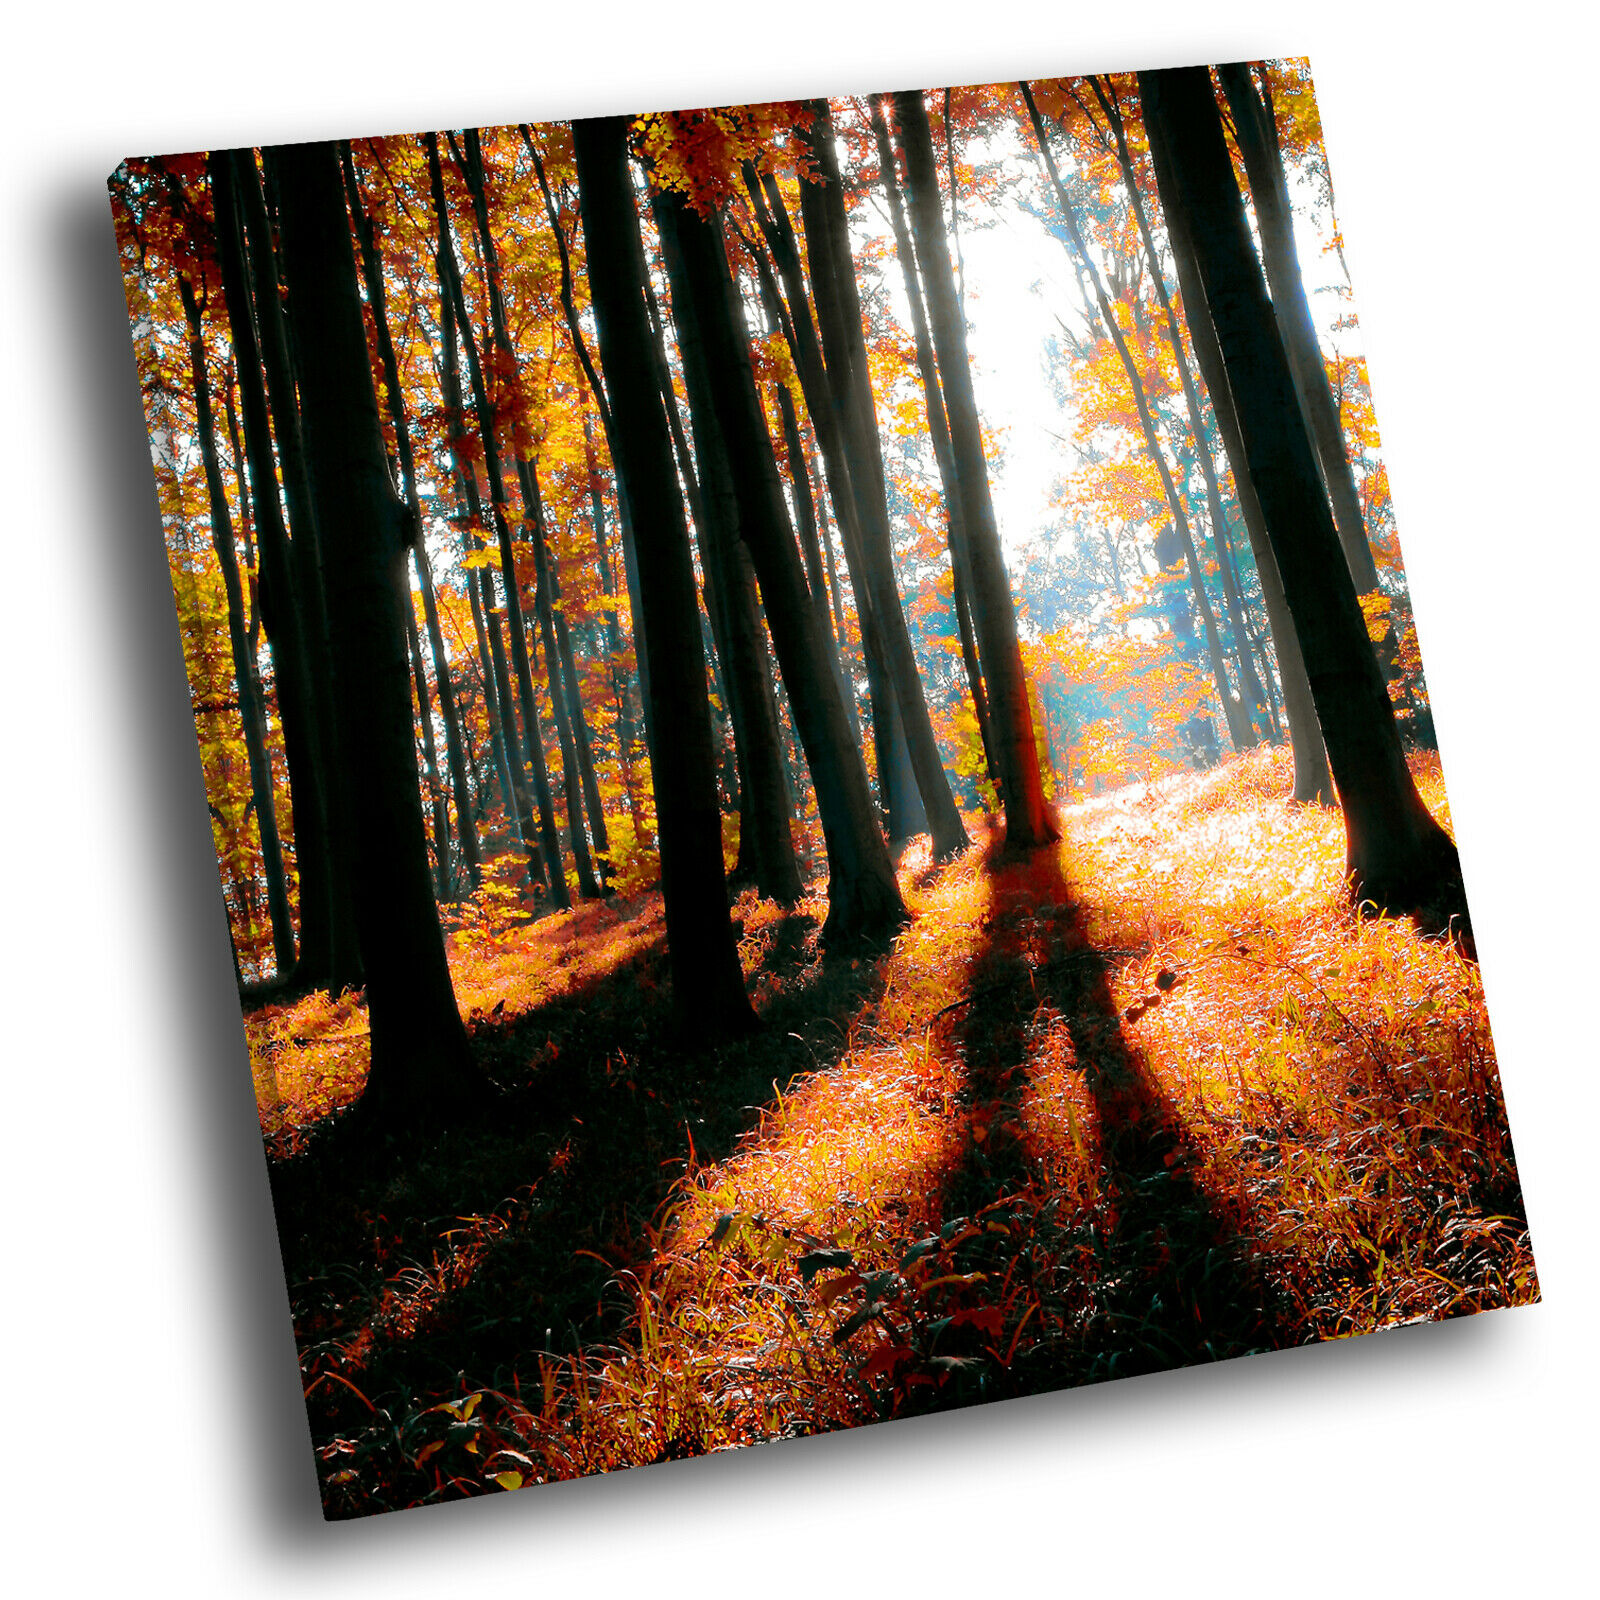 Autumn Orange Forest Nature Square Scenic Canvas Wall Art Large Picture Print